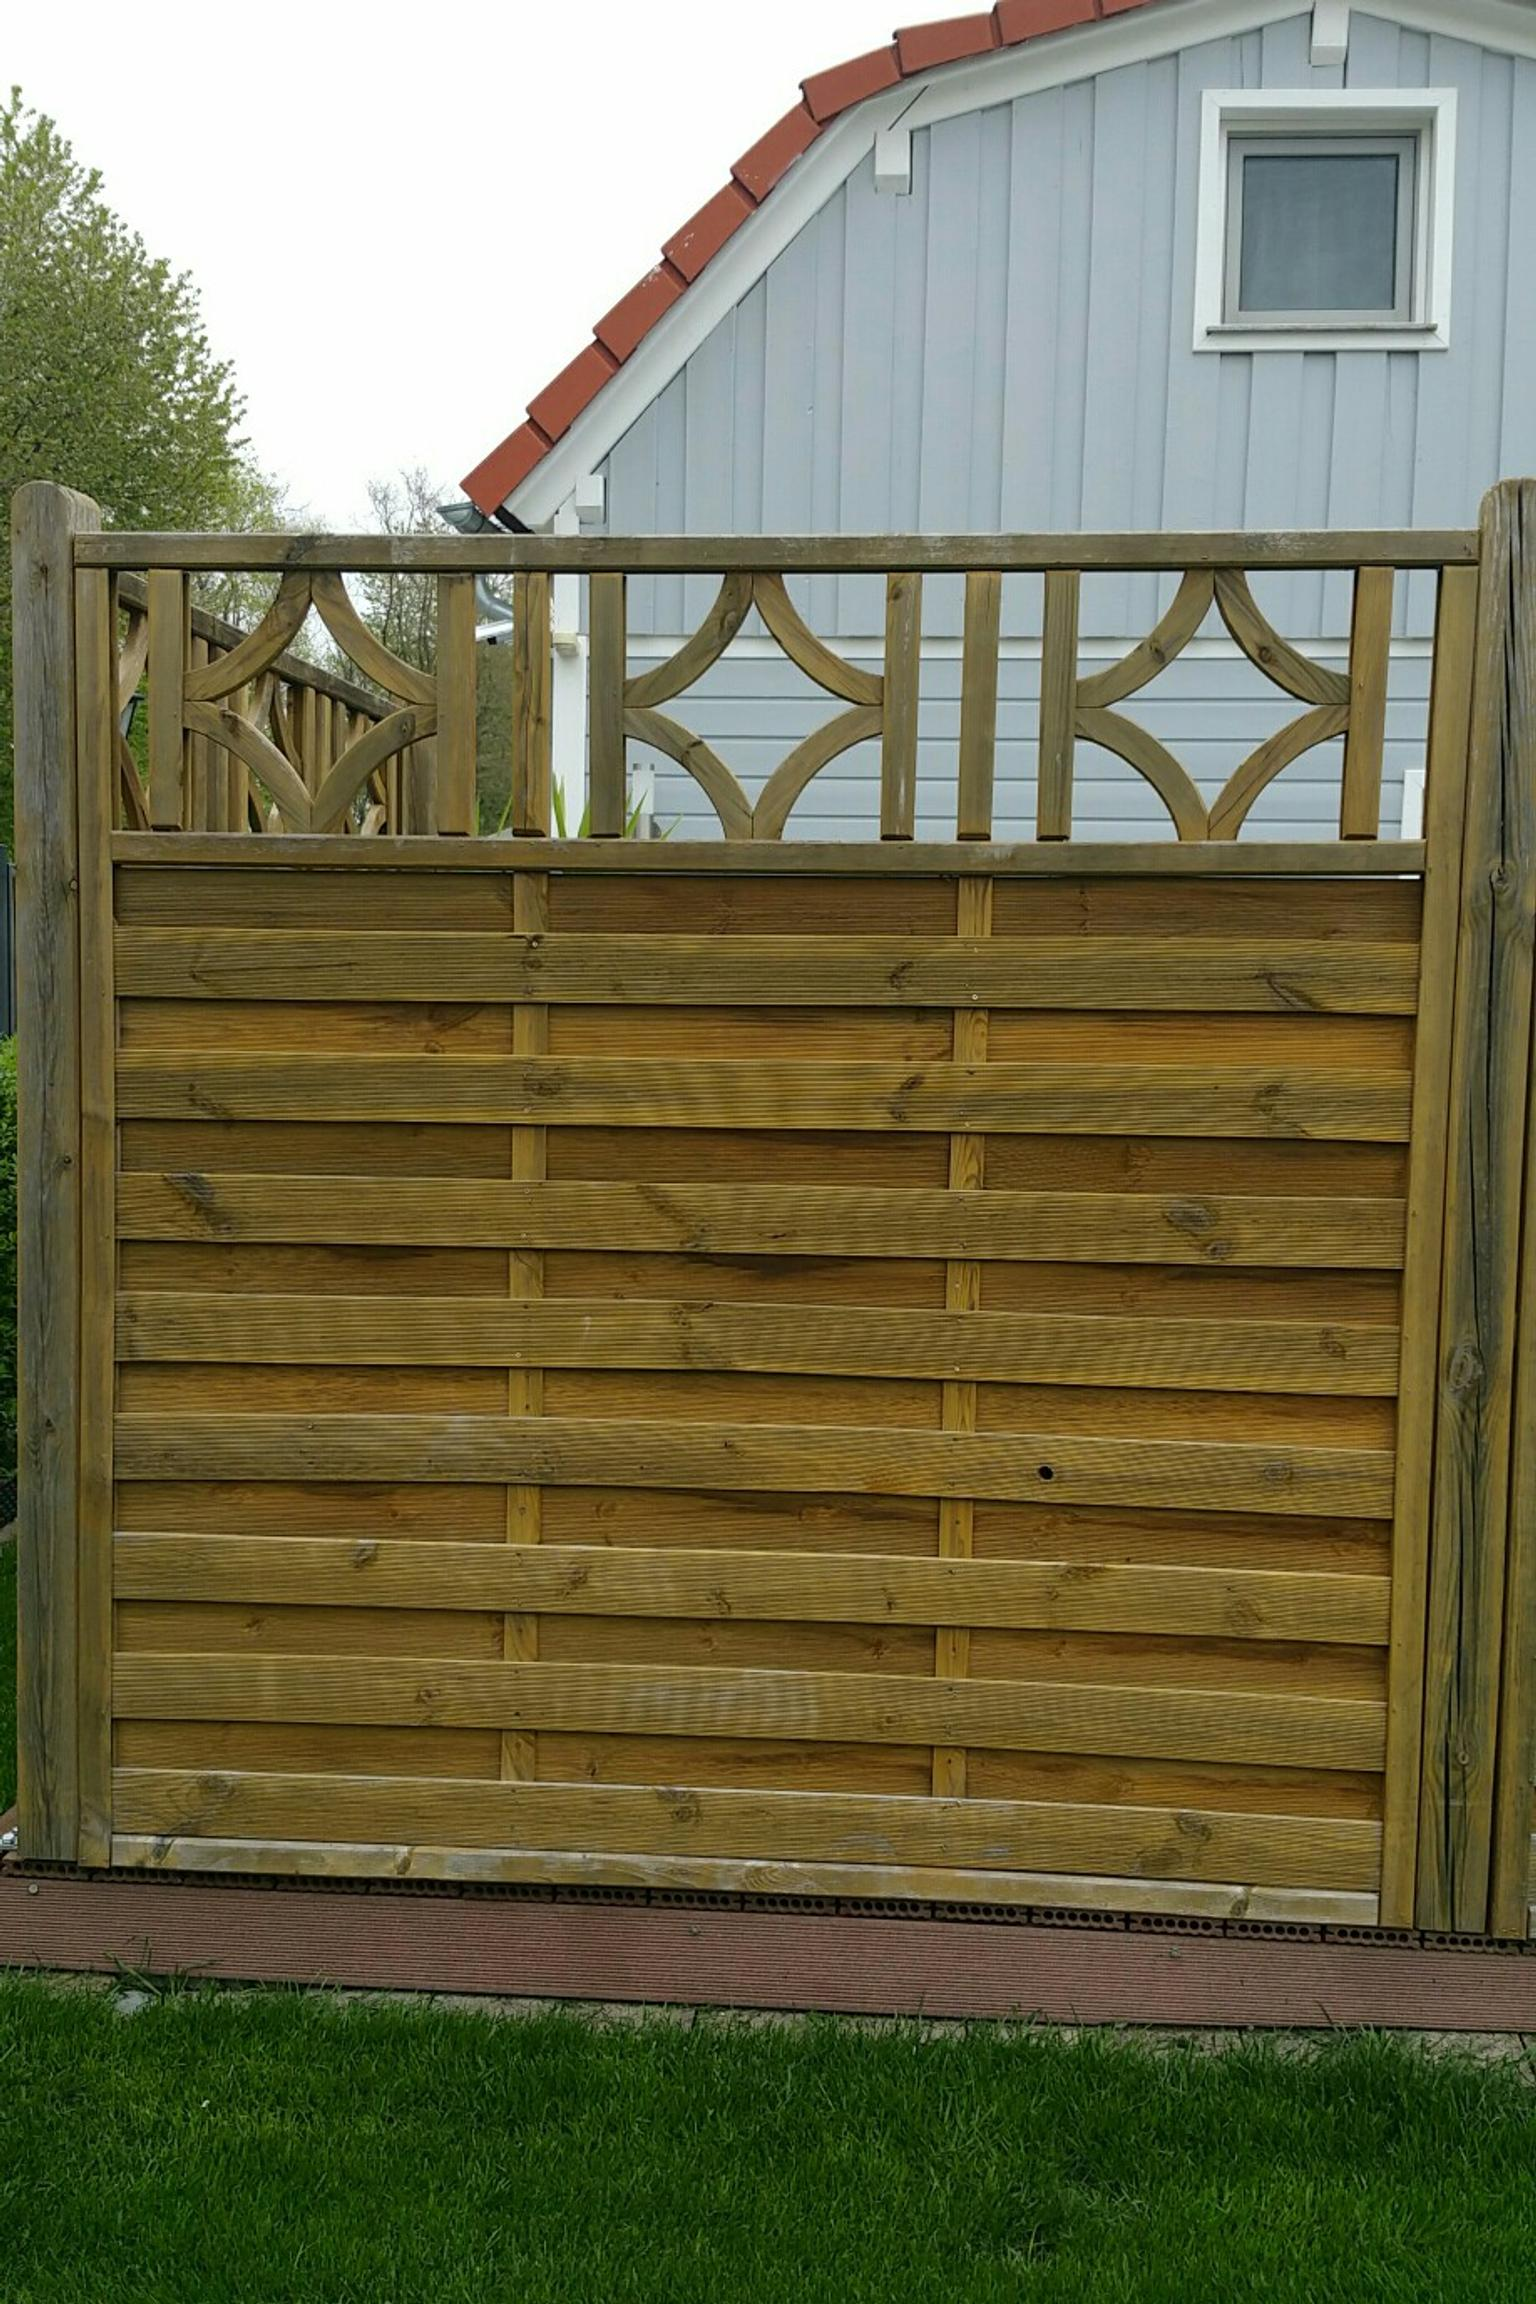 Holz Sichtschutz Wand Braun In 4400 Steyr For 90 00 For Sale Shpock